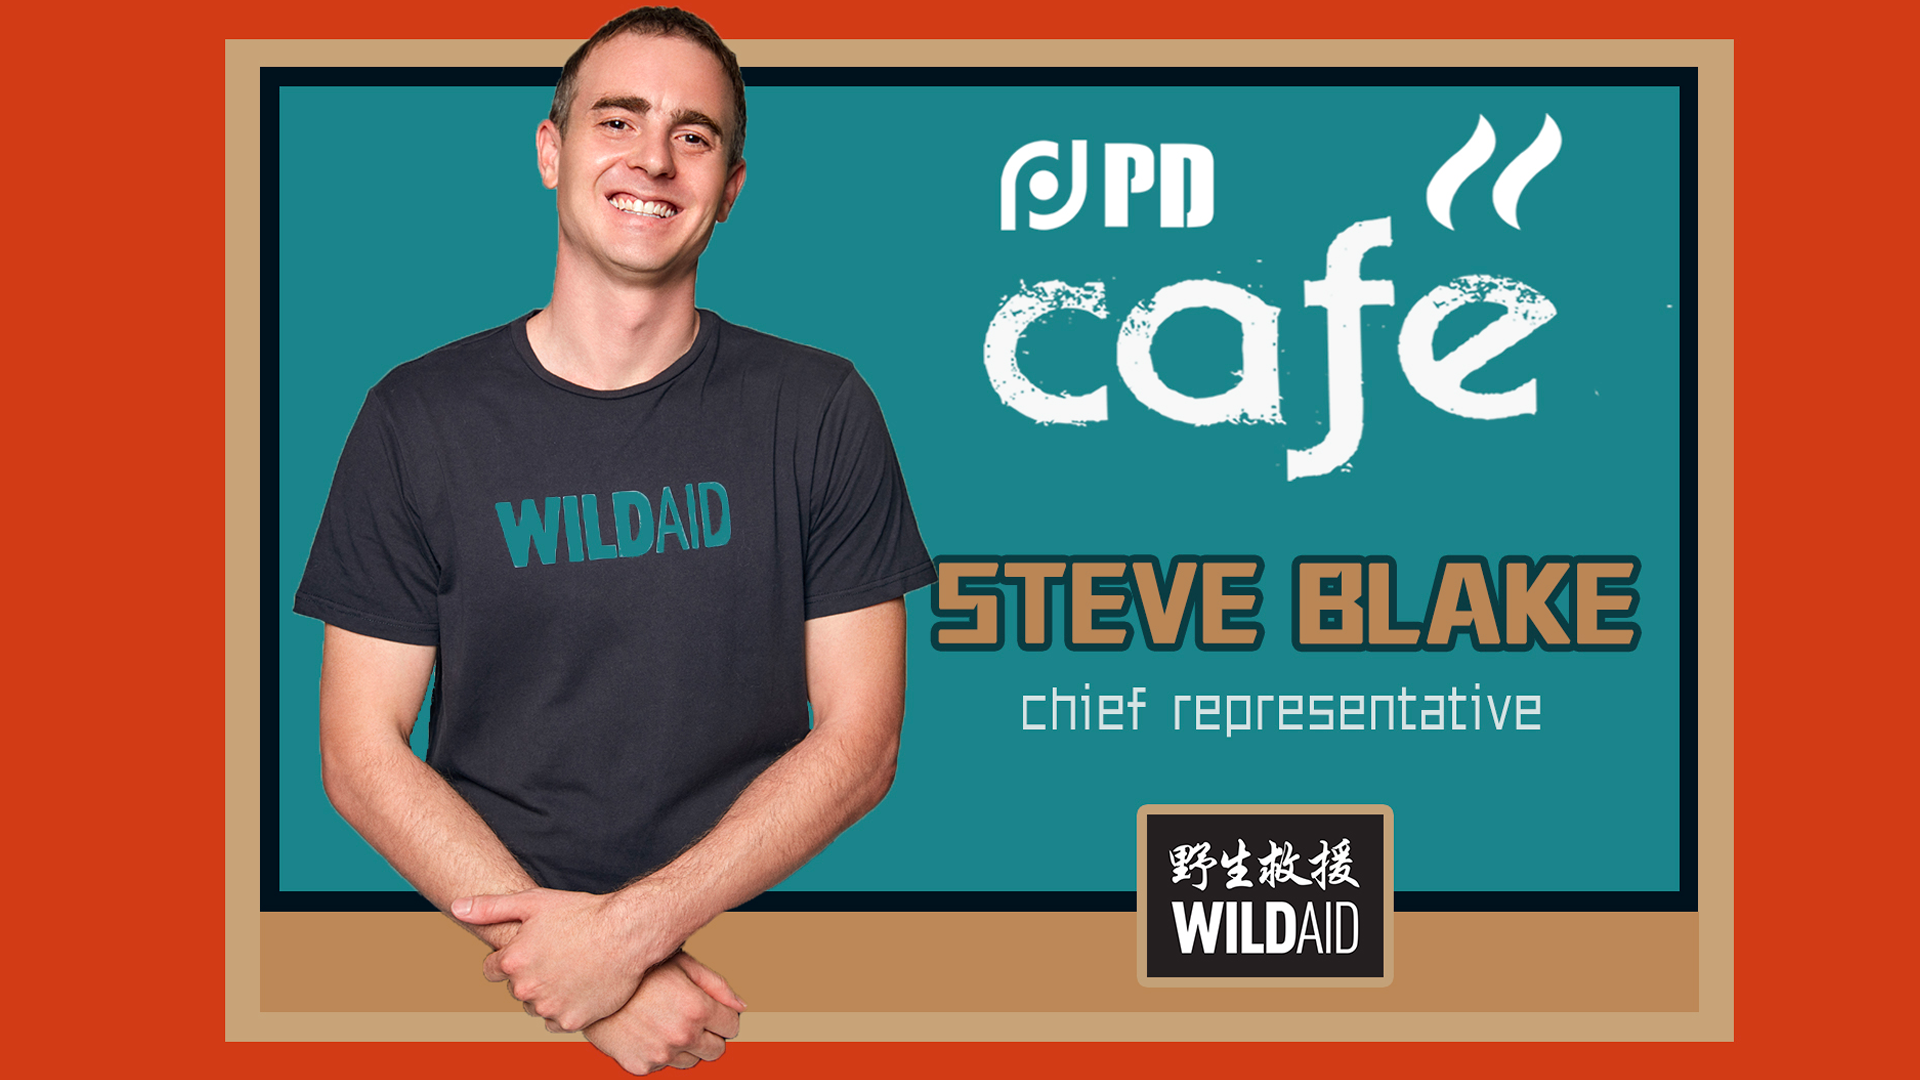 PD Café | Steve Blake: When wildlife buying stops, the killing can too